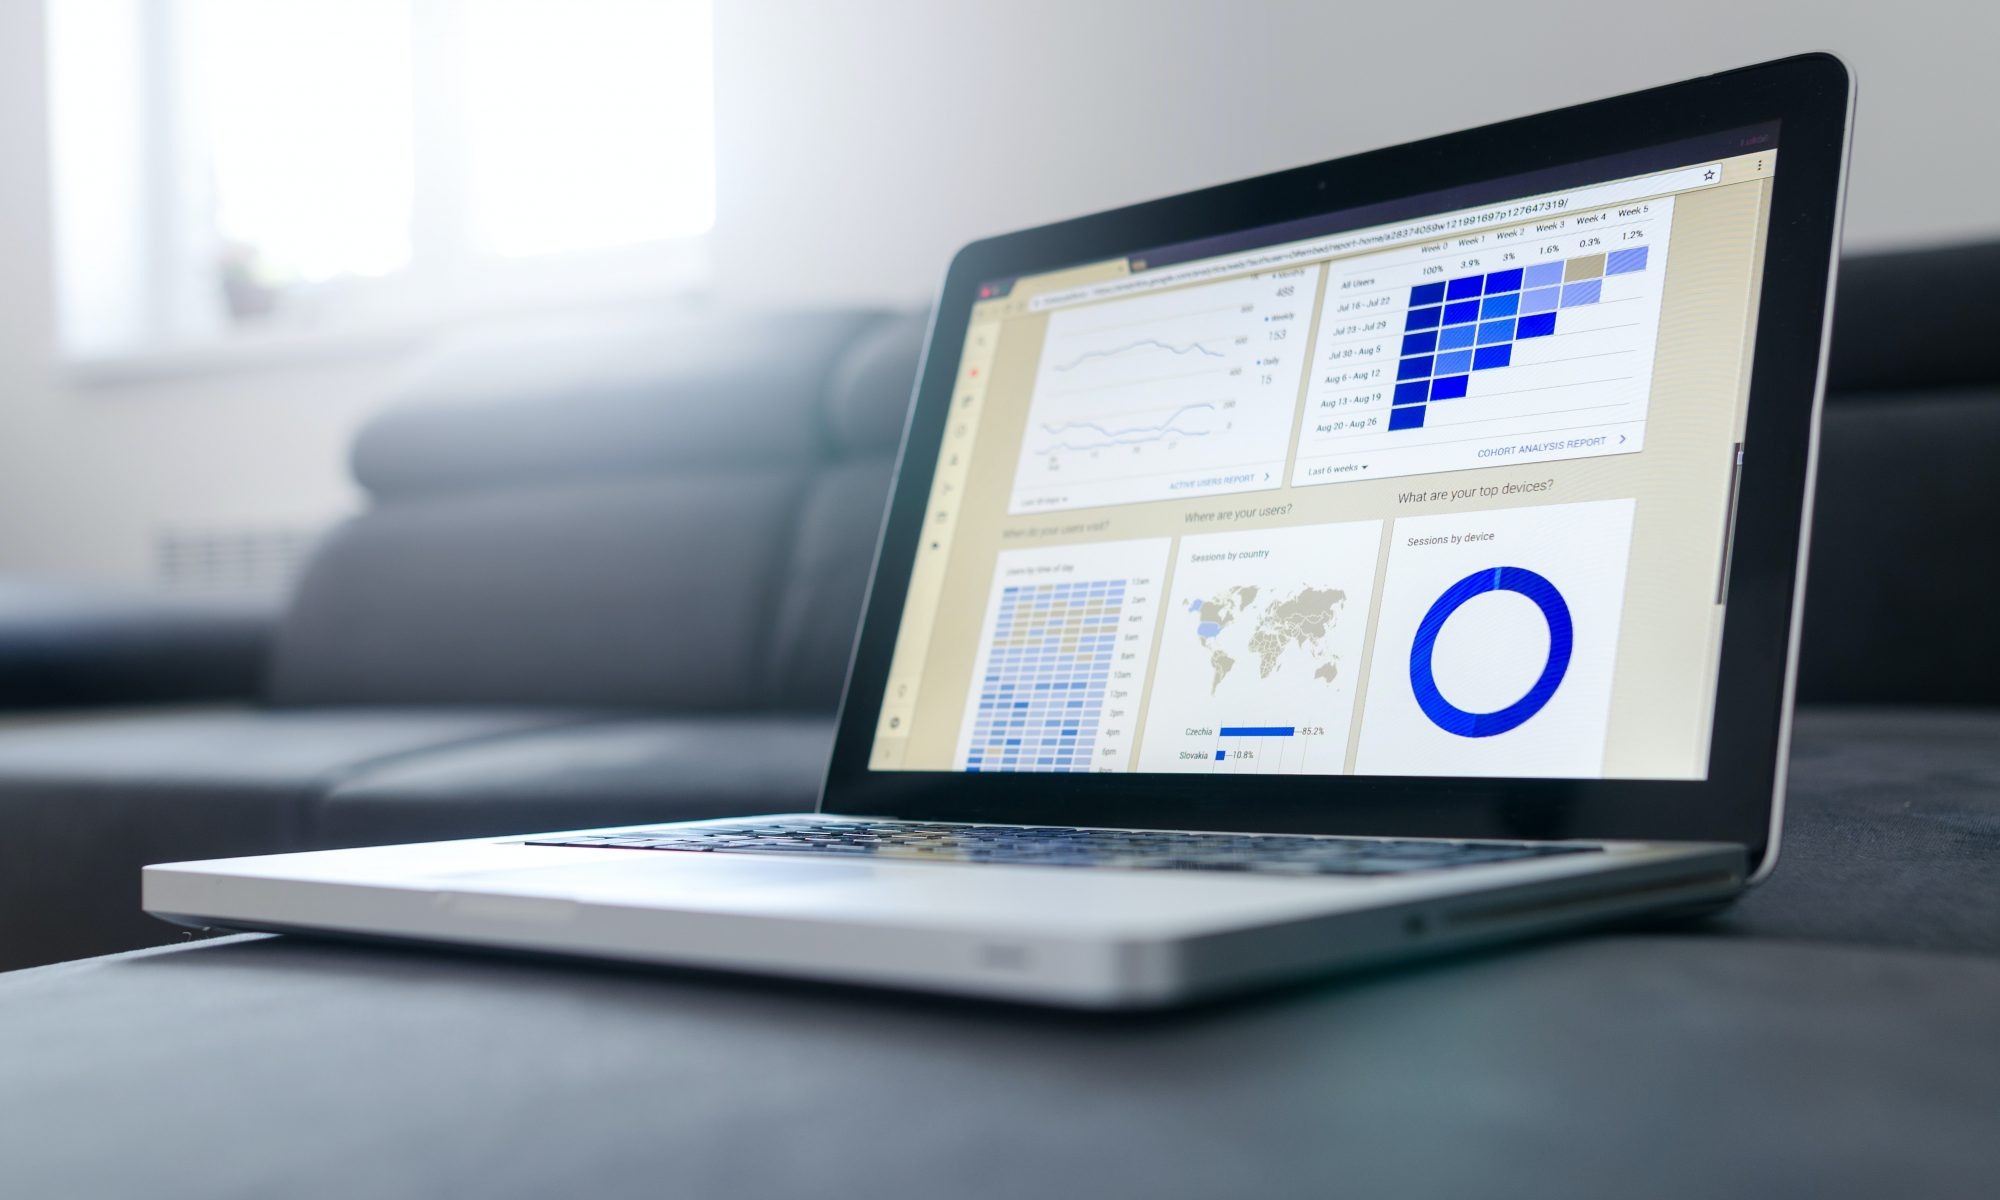 A laptop screen with charts on